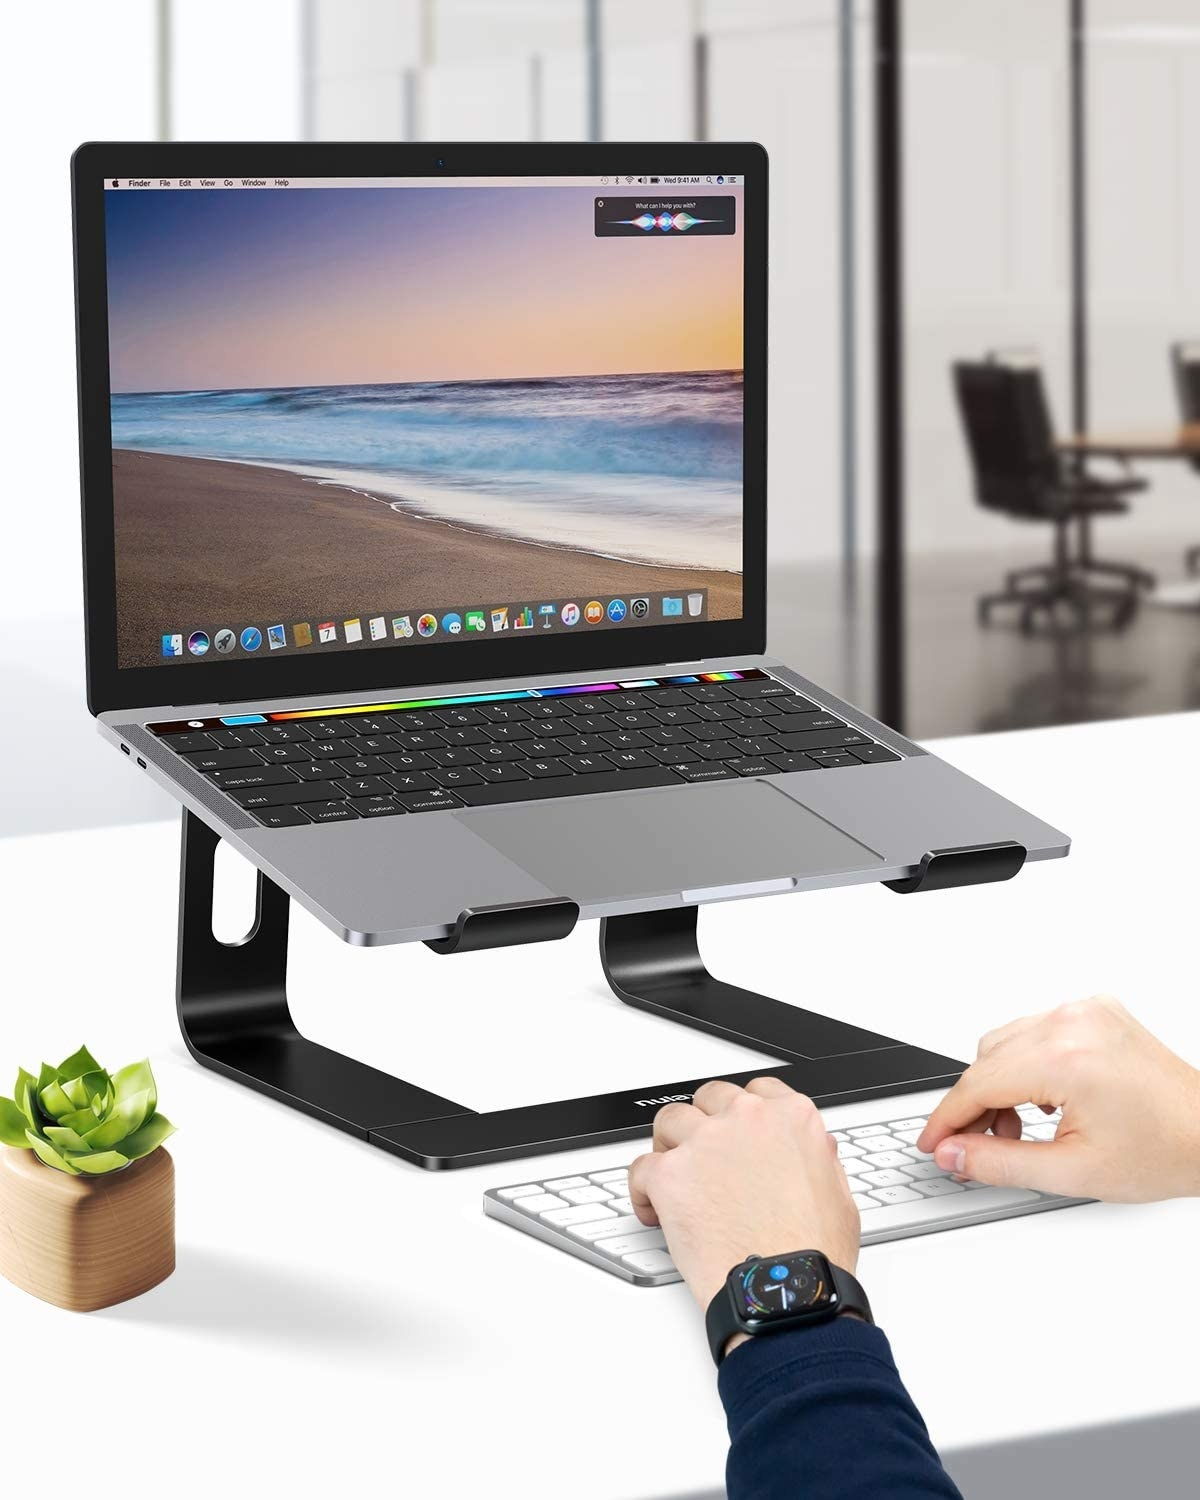 person using a keyboard next to their laptop that's on the stand